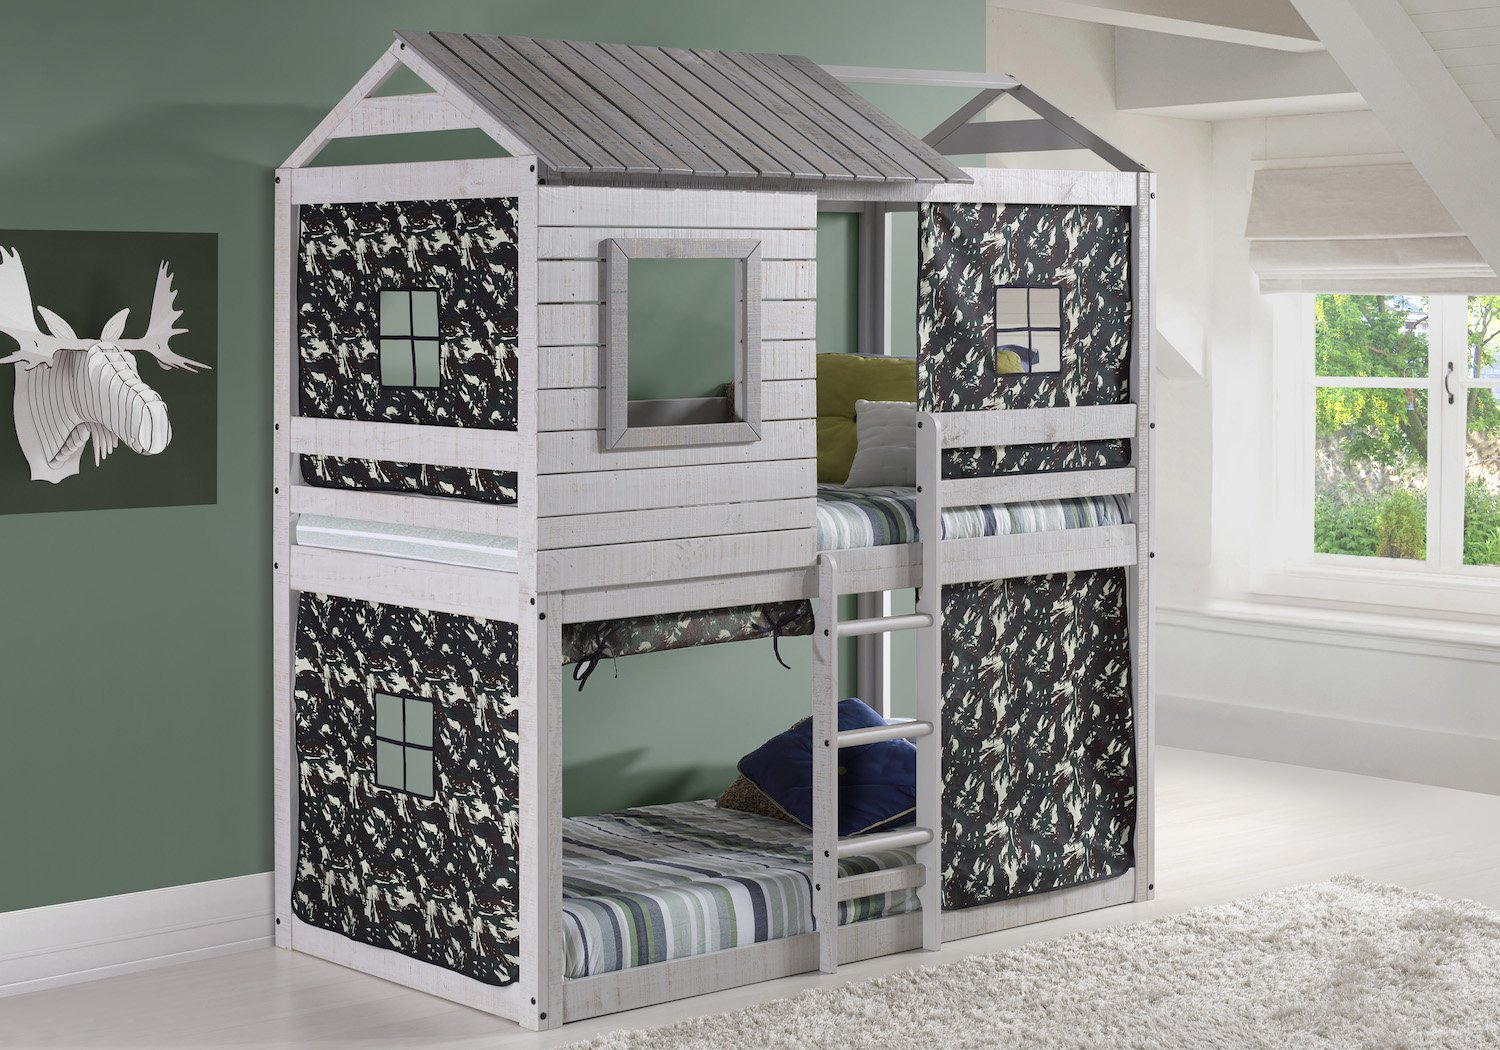 Amazon.com House Double Bunk Beds with Camouflage Tents - Free Storage Pockets Kitchen u0026 Dining : bunk beds tents - memphite.com